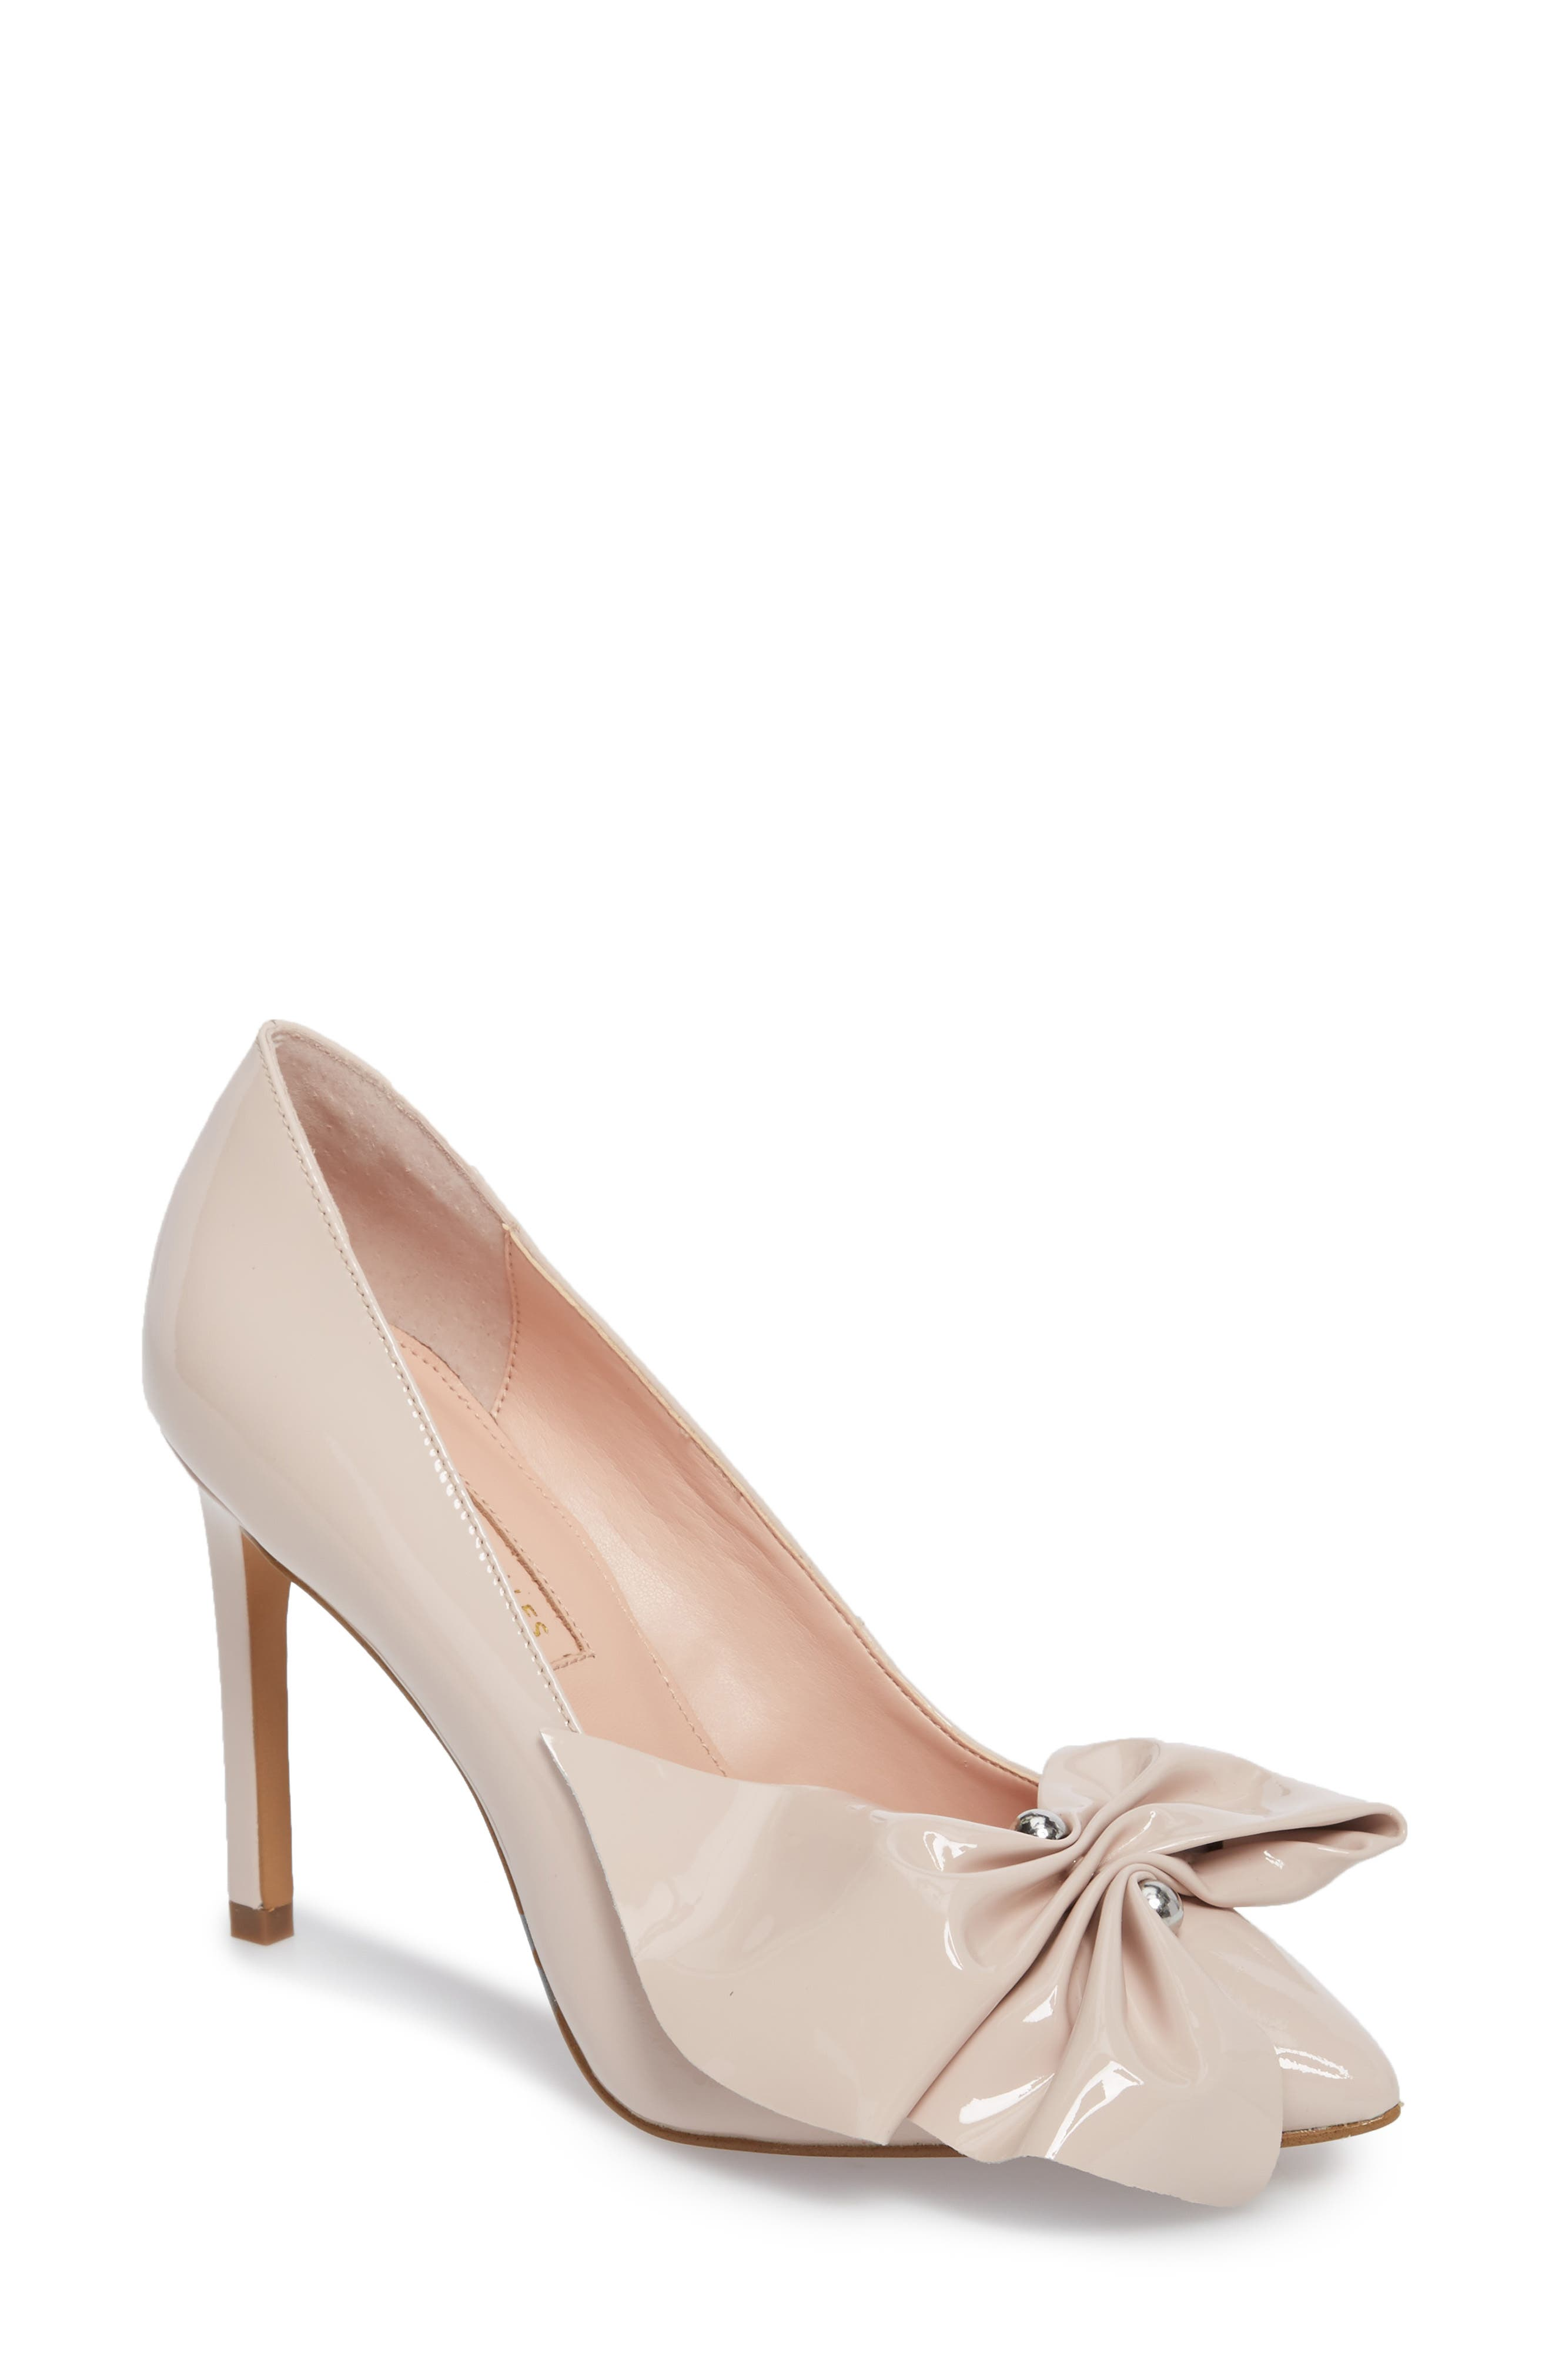 Bow Pointy Toe Pump,                         Main,                         color, Avec Pink Leather